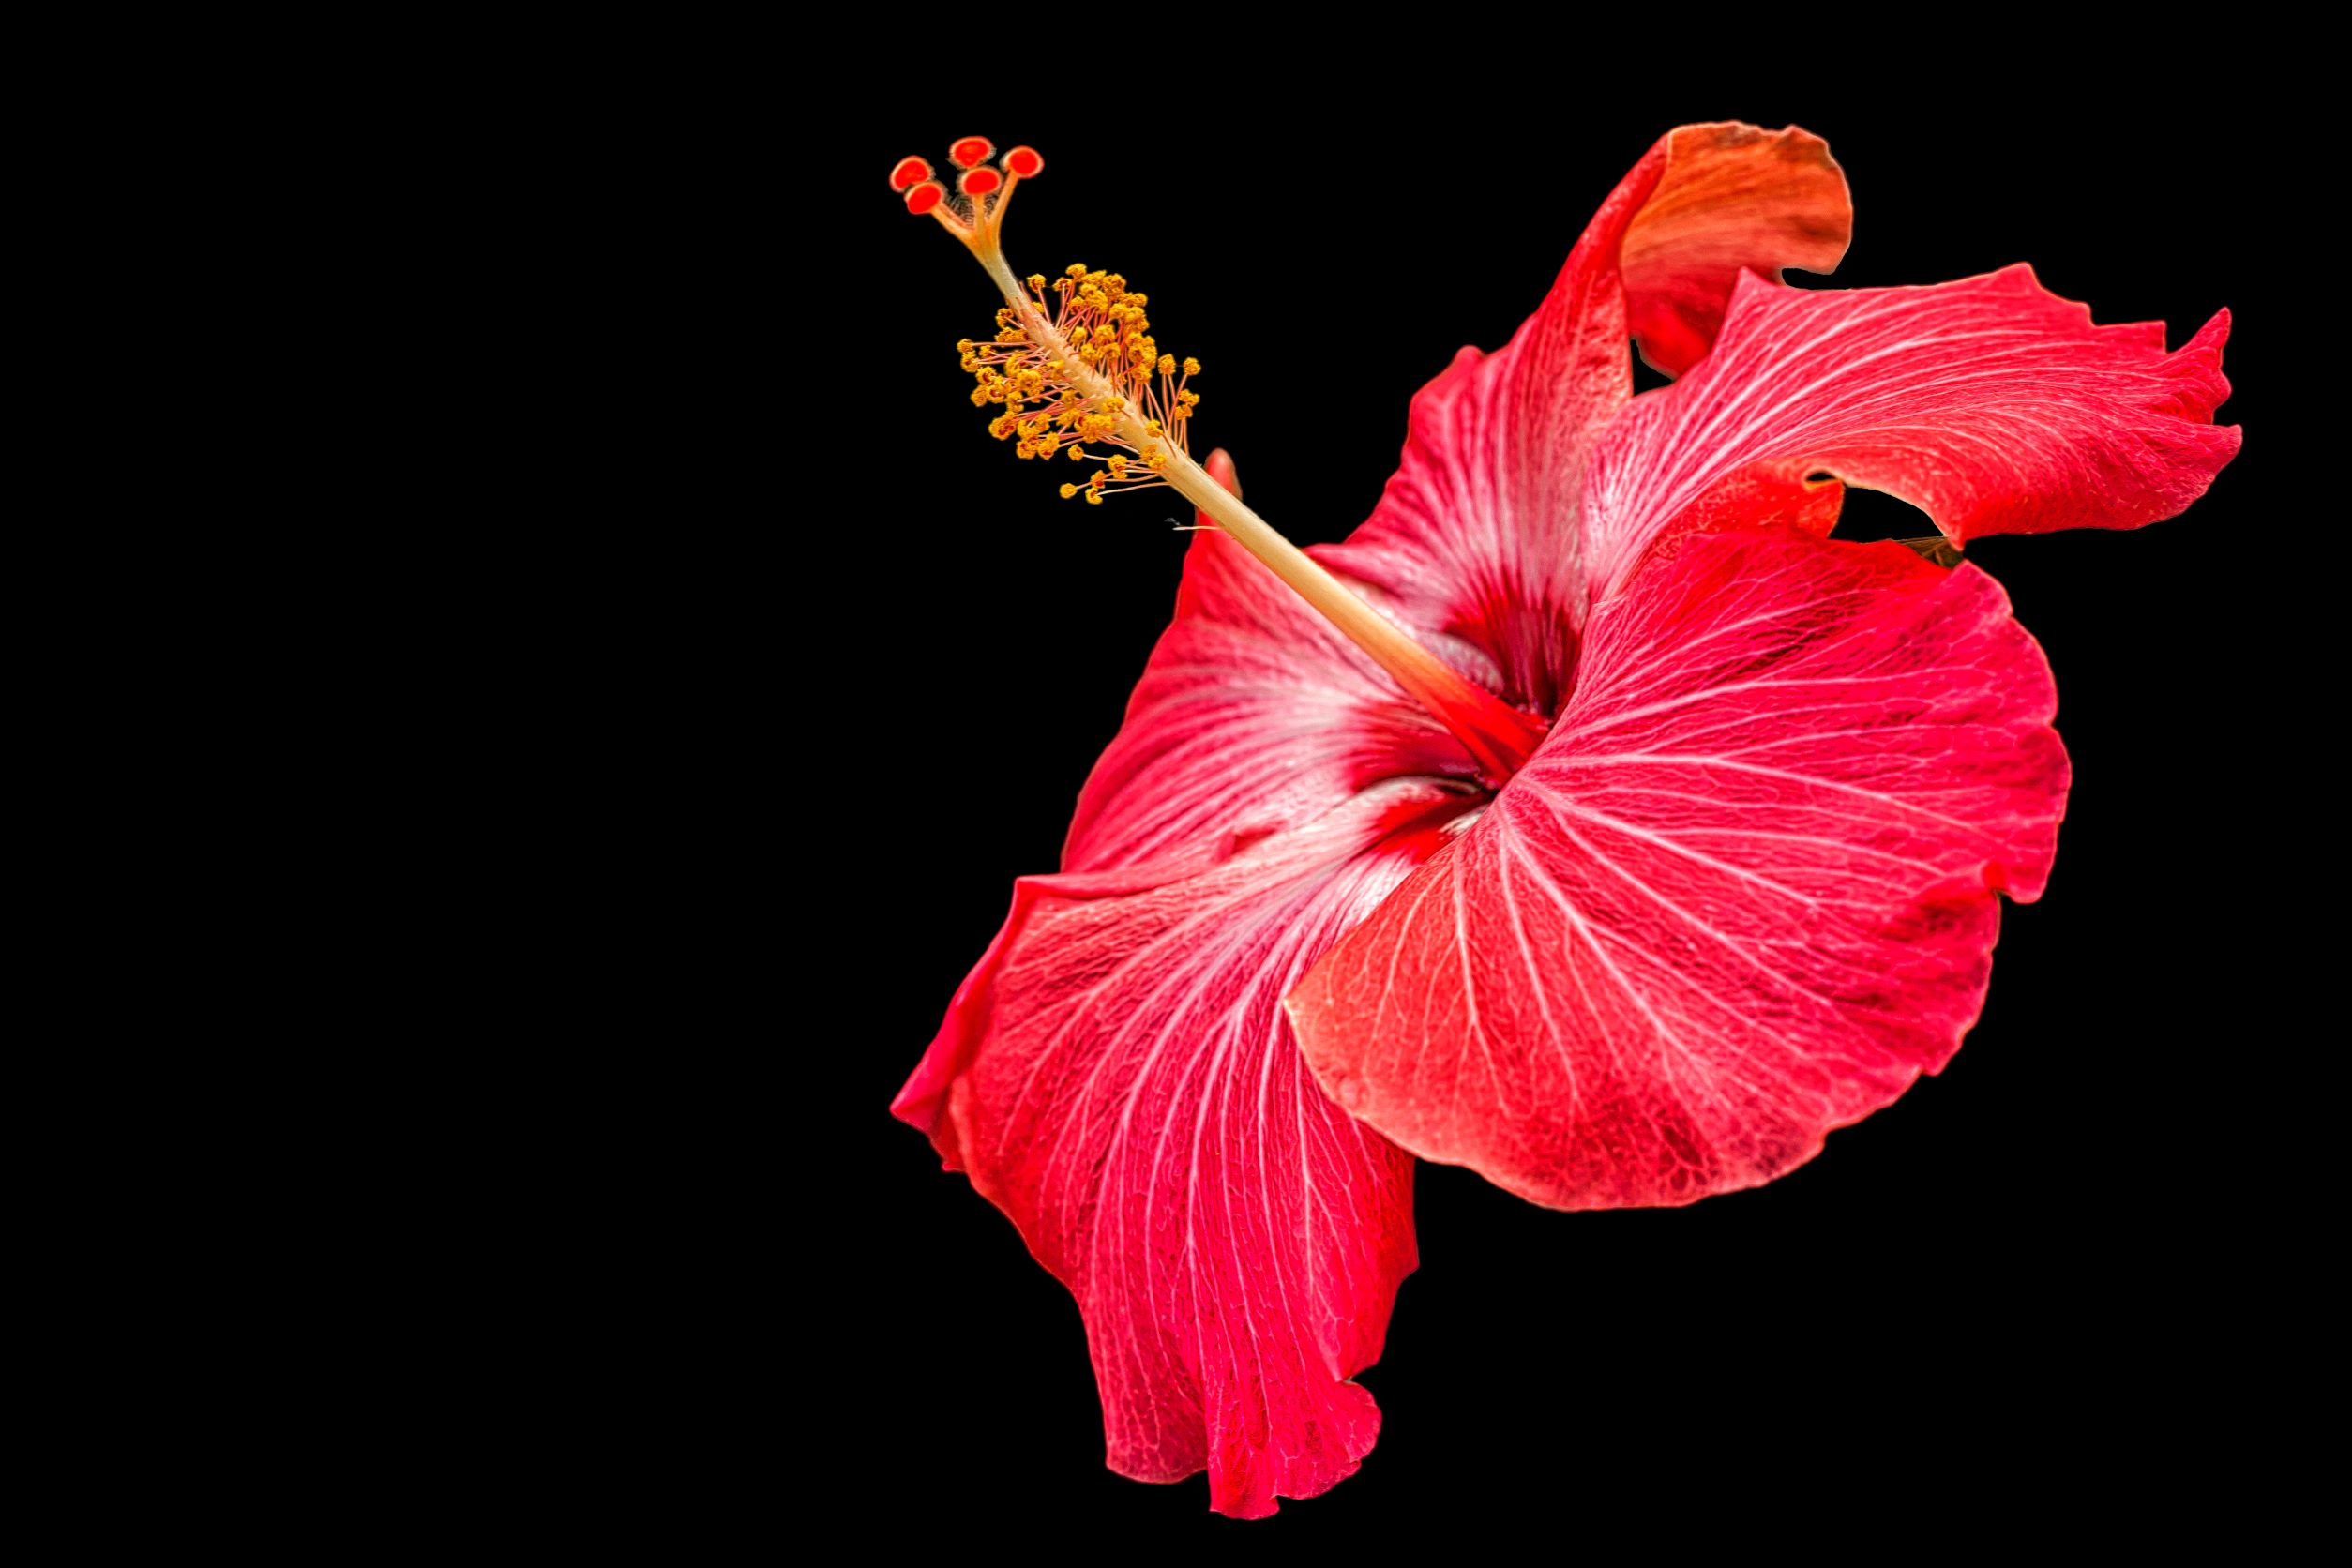 You are currently viewing Flower Red